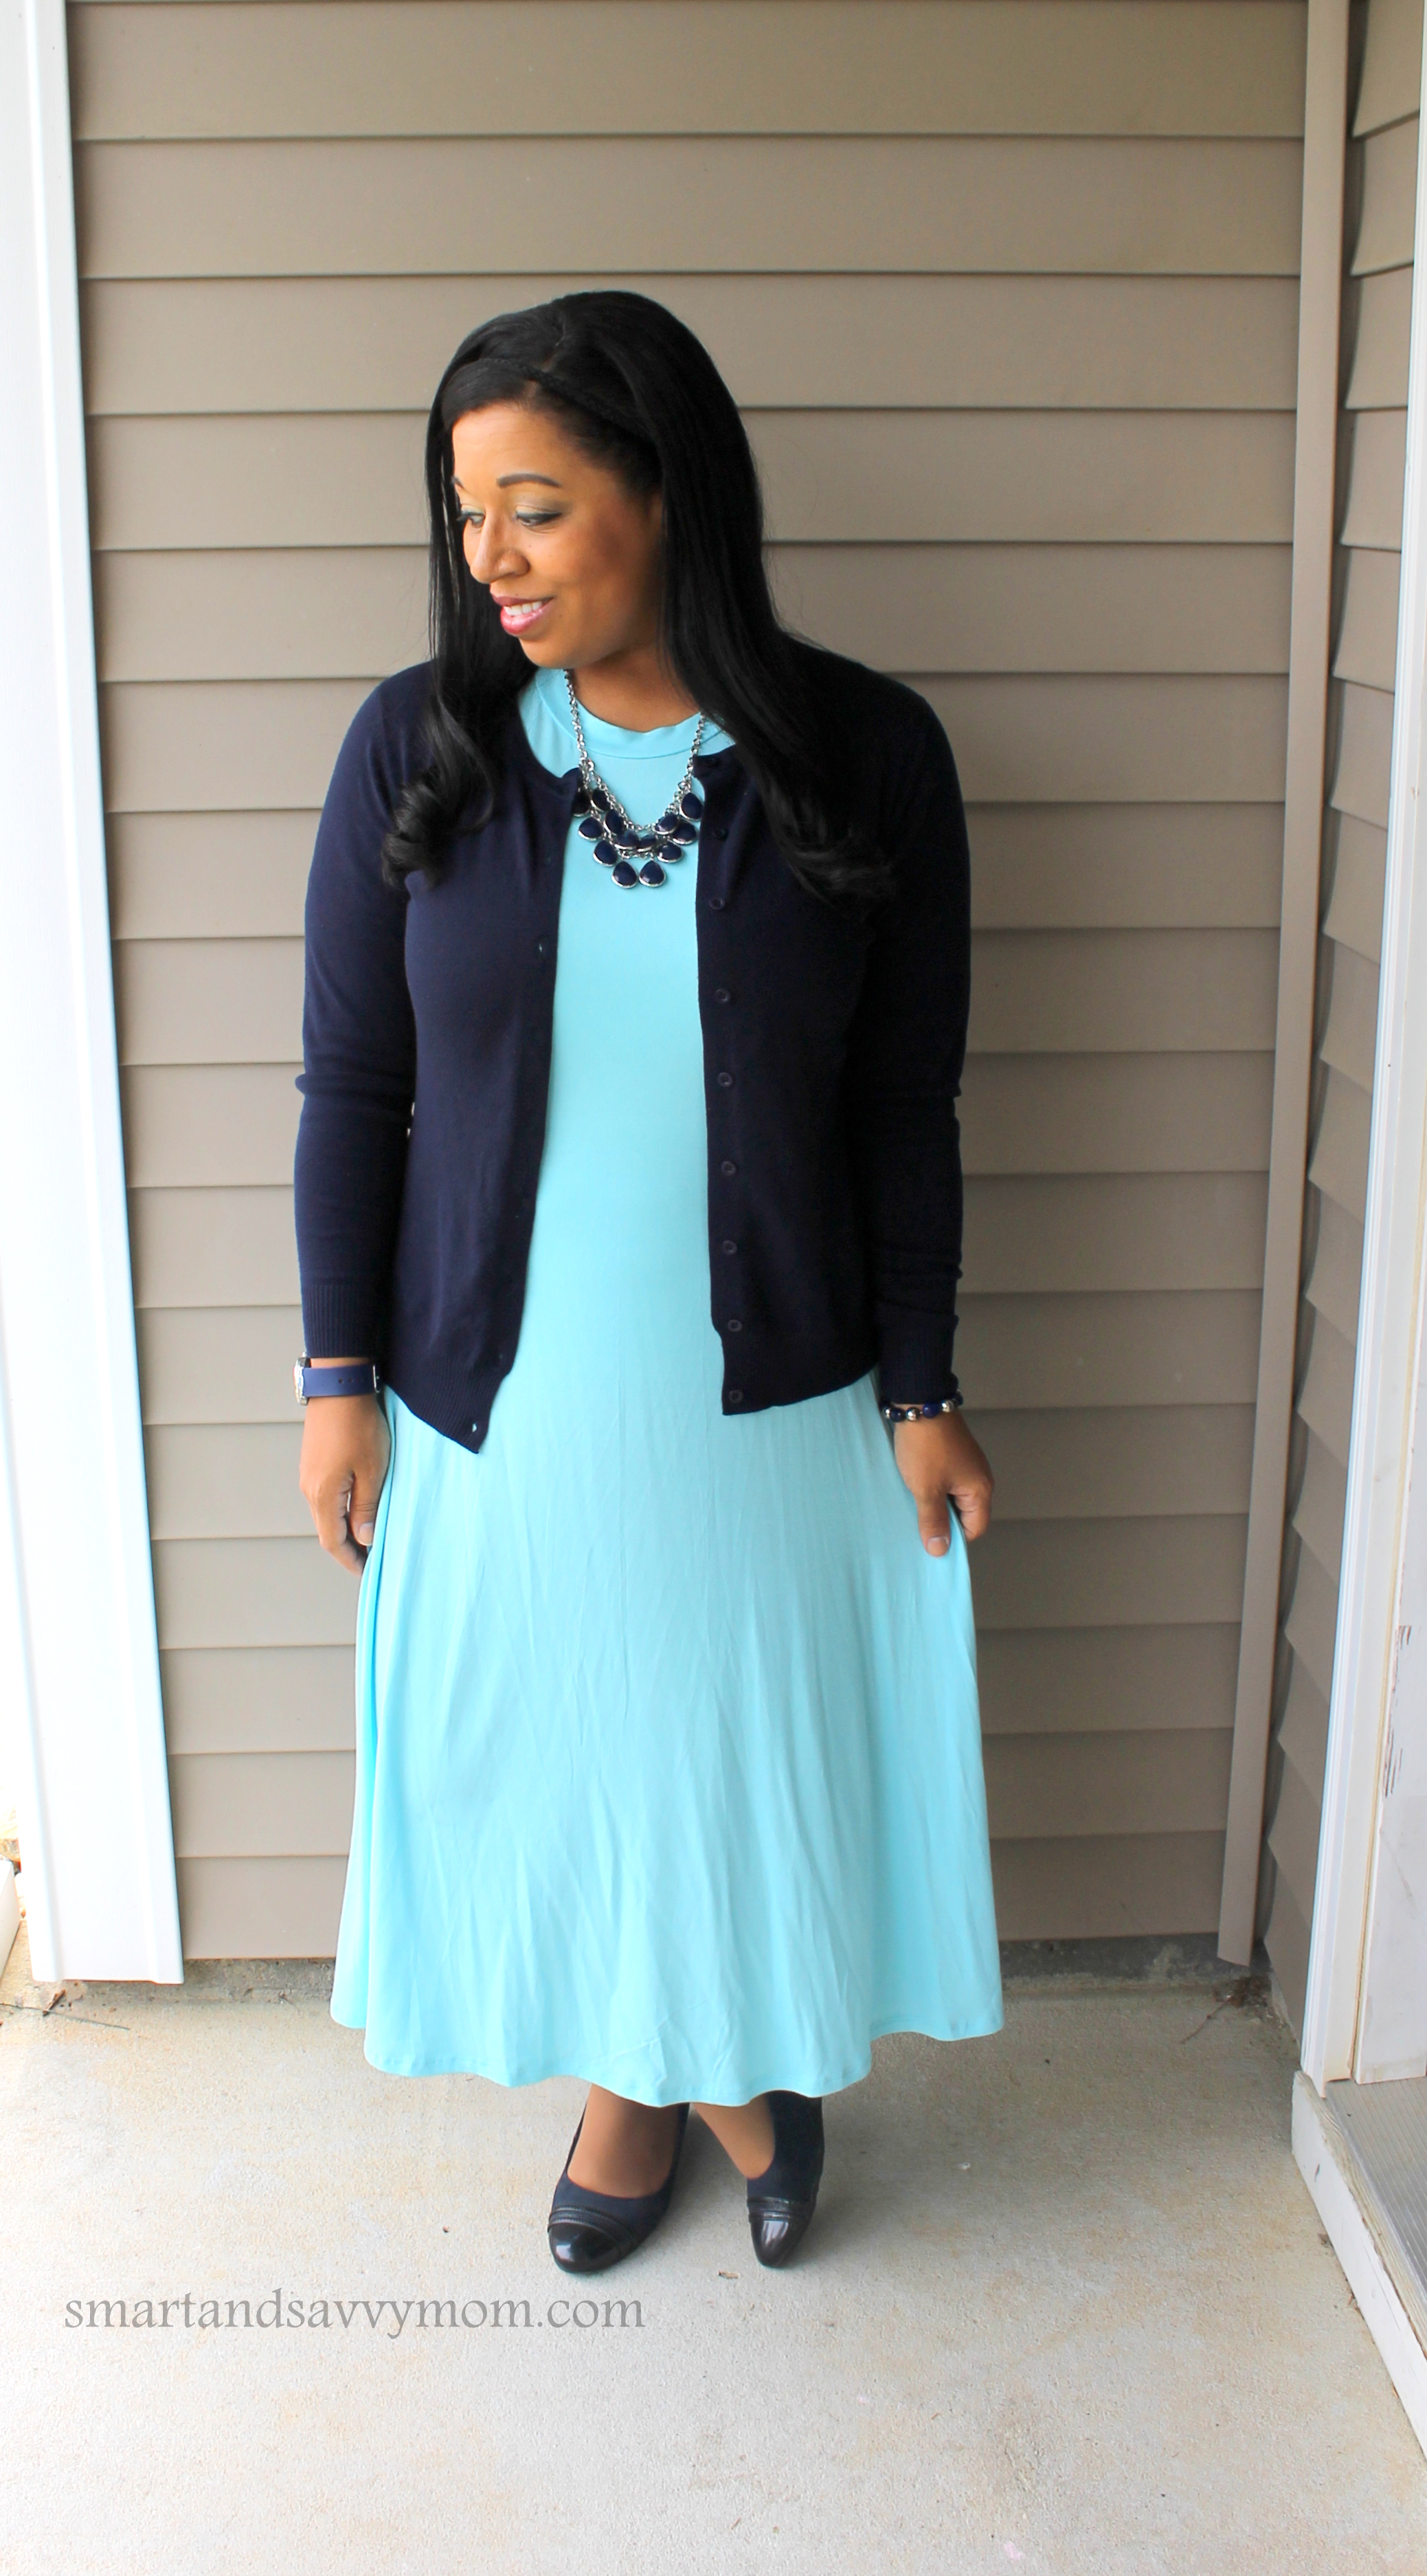 layering my pastel blue spring swing dress with navy blue cardigan and bib necklace. Modest outfit idea